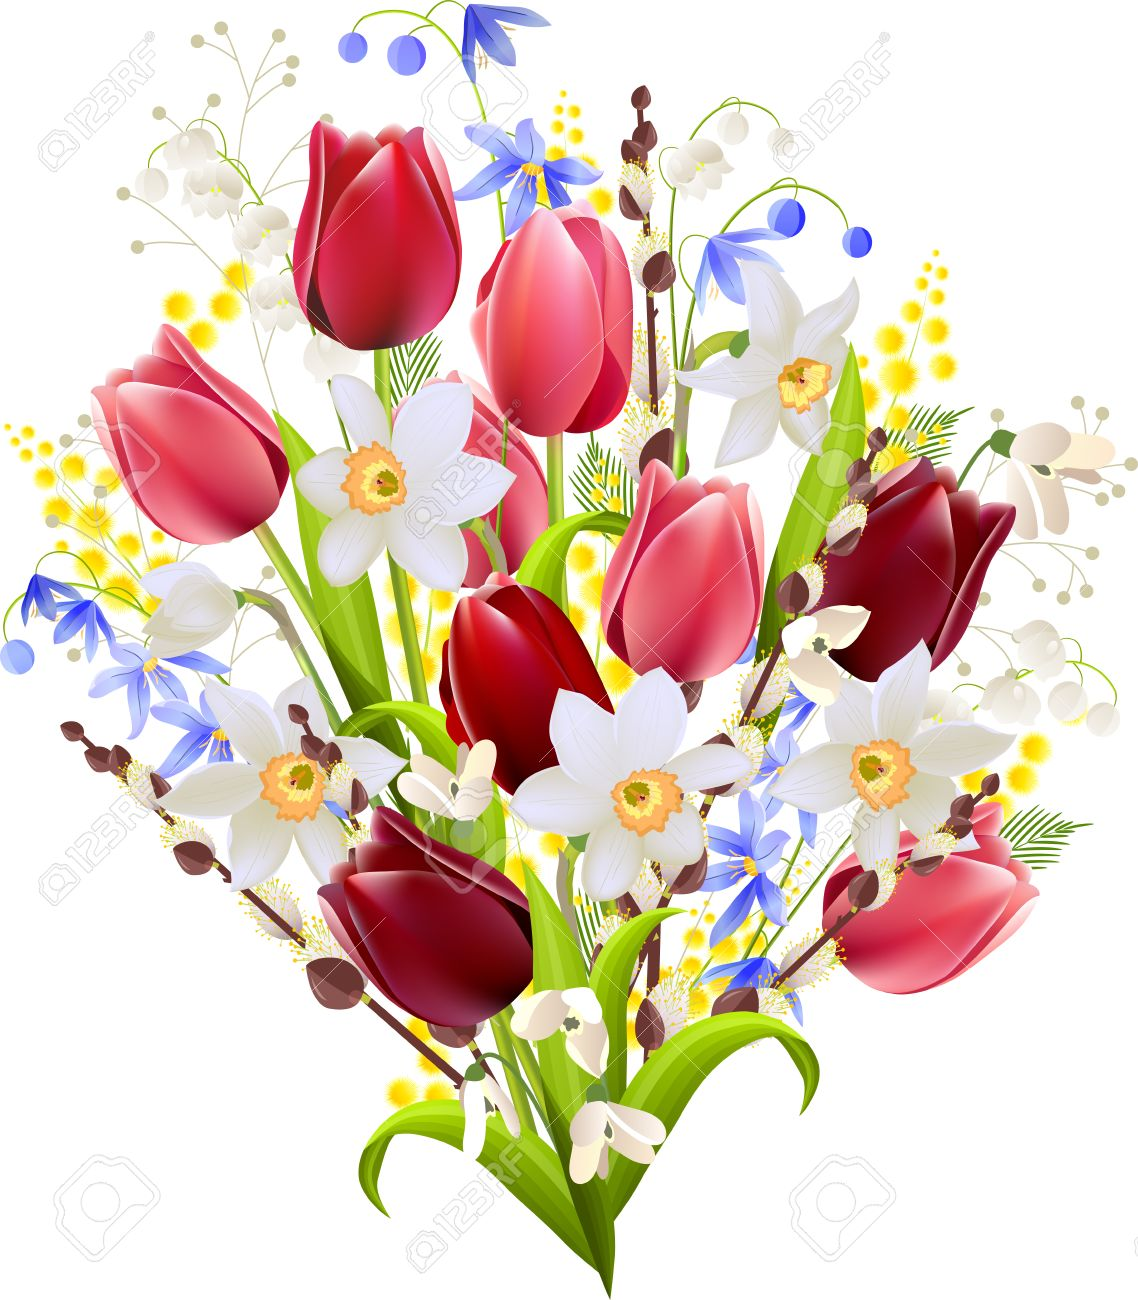 Big bunch of spring flowers on white royalty free cliparts vectors big bunch of spring flowers on white stock vector 38200401 mightylinksfo Images